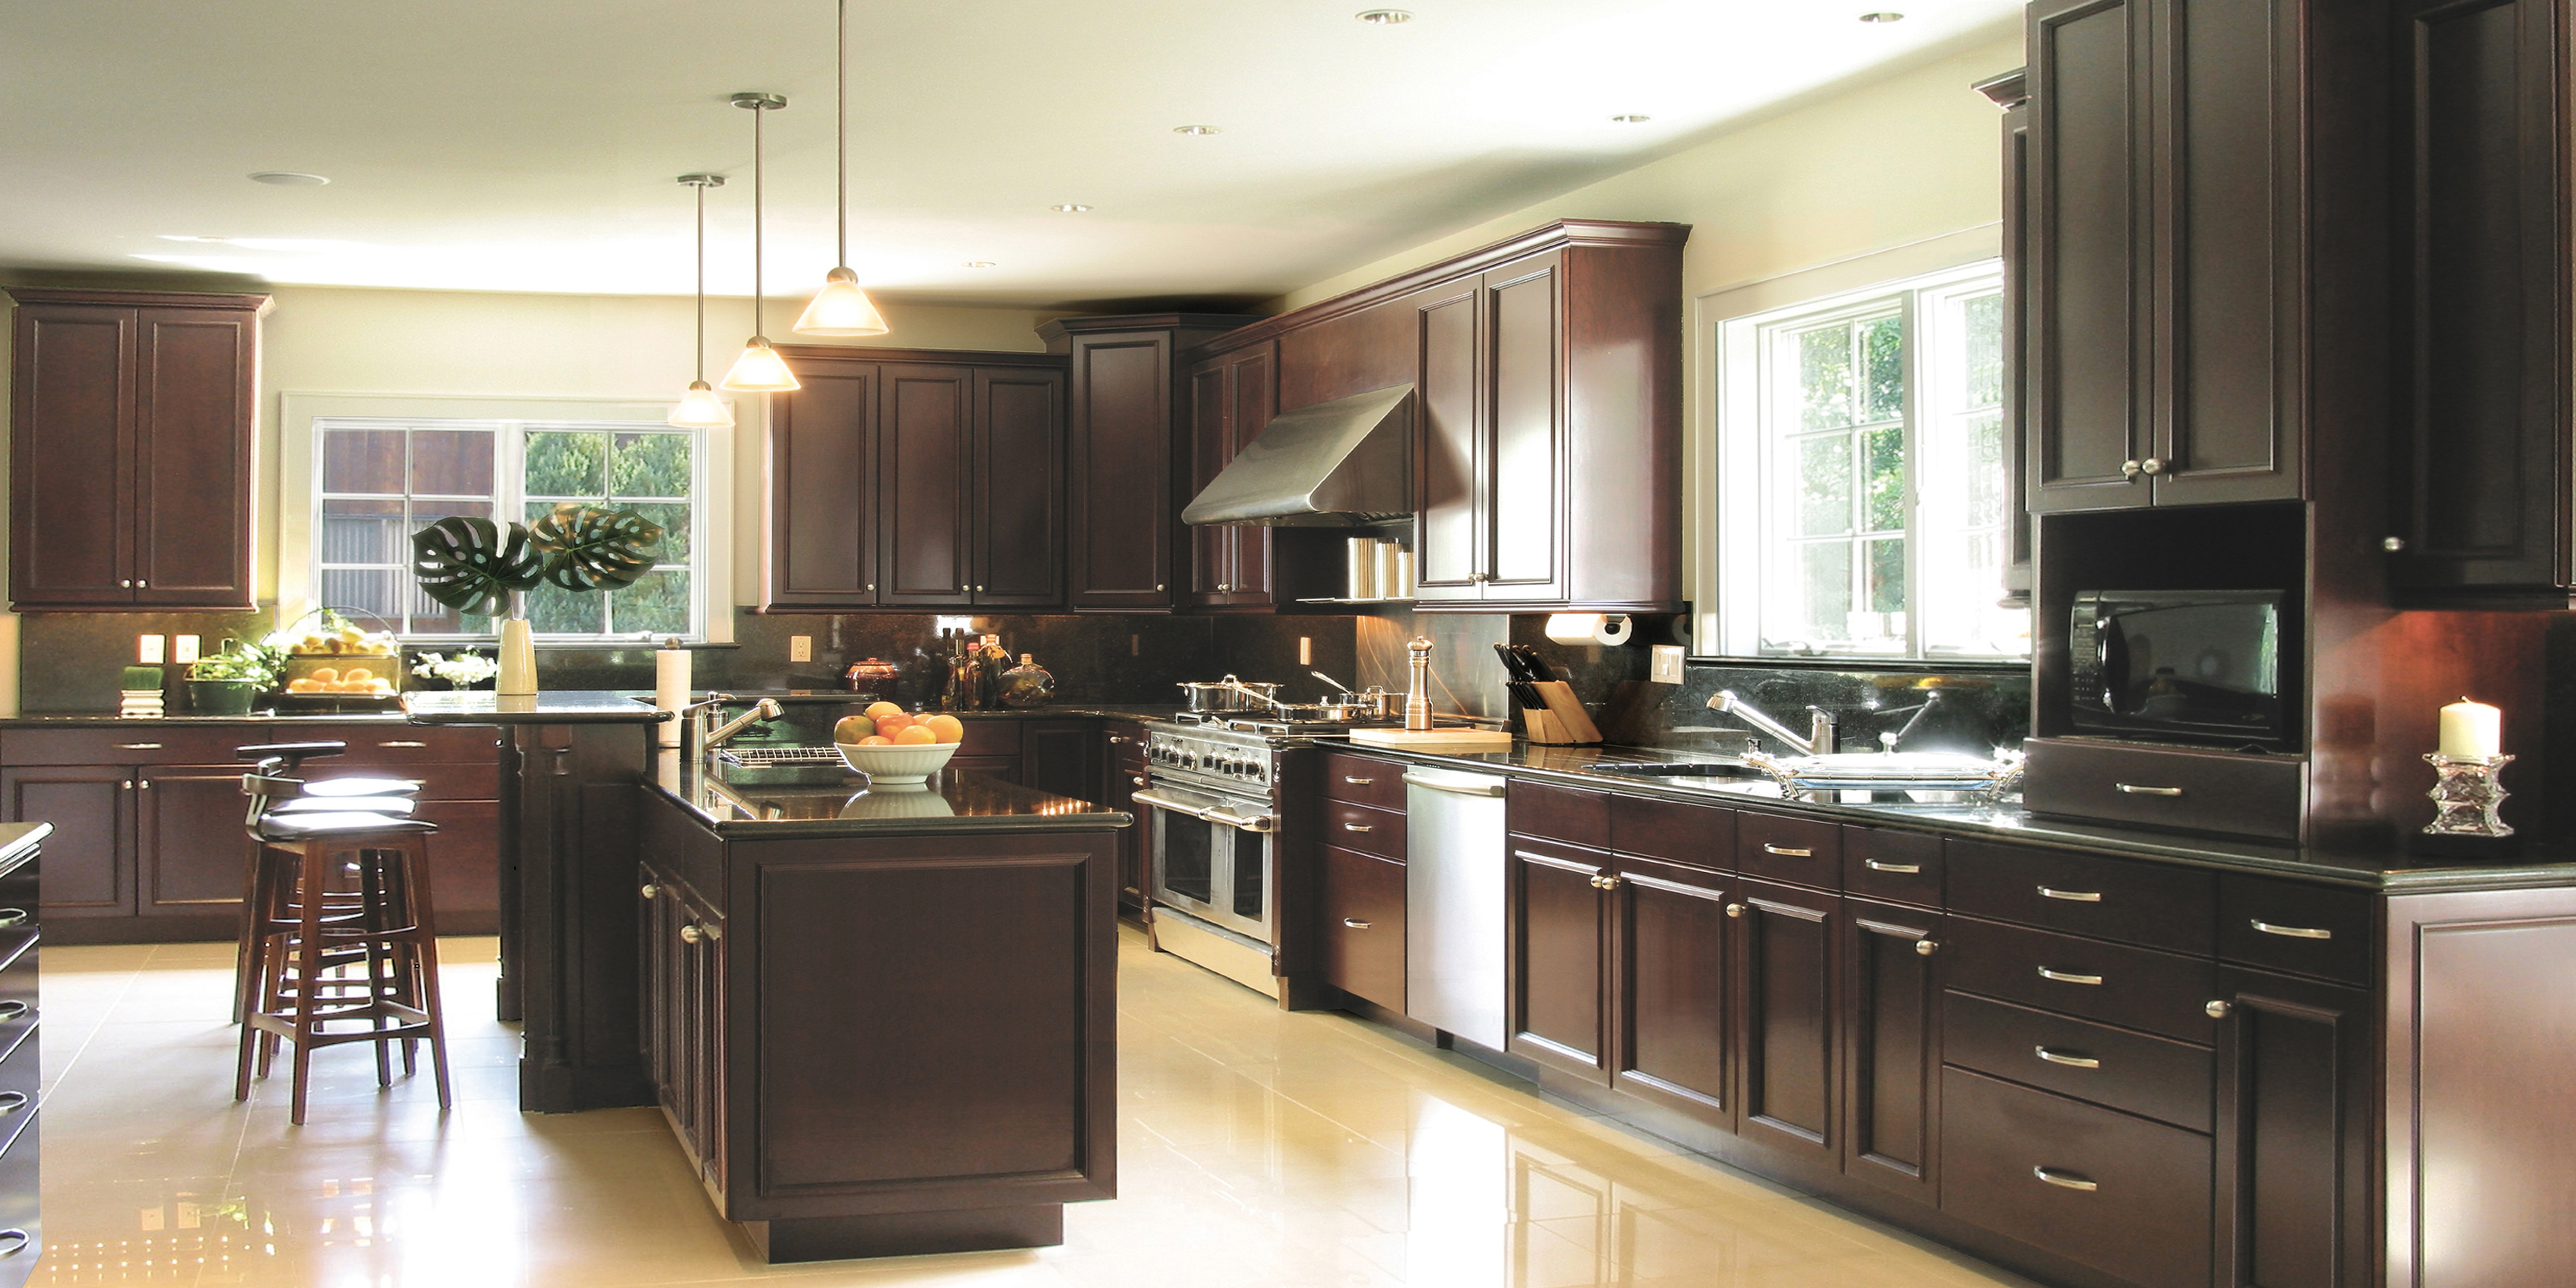 Kitchen cabinets in flushing ny - Fashion Responsive